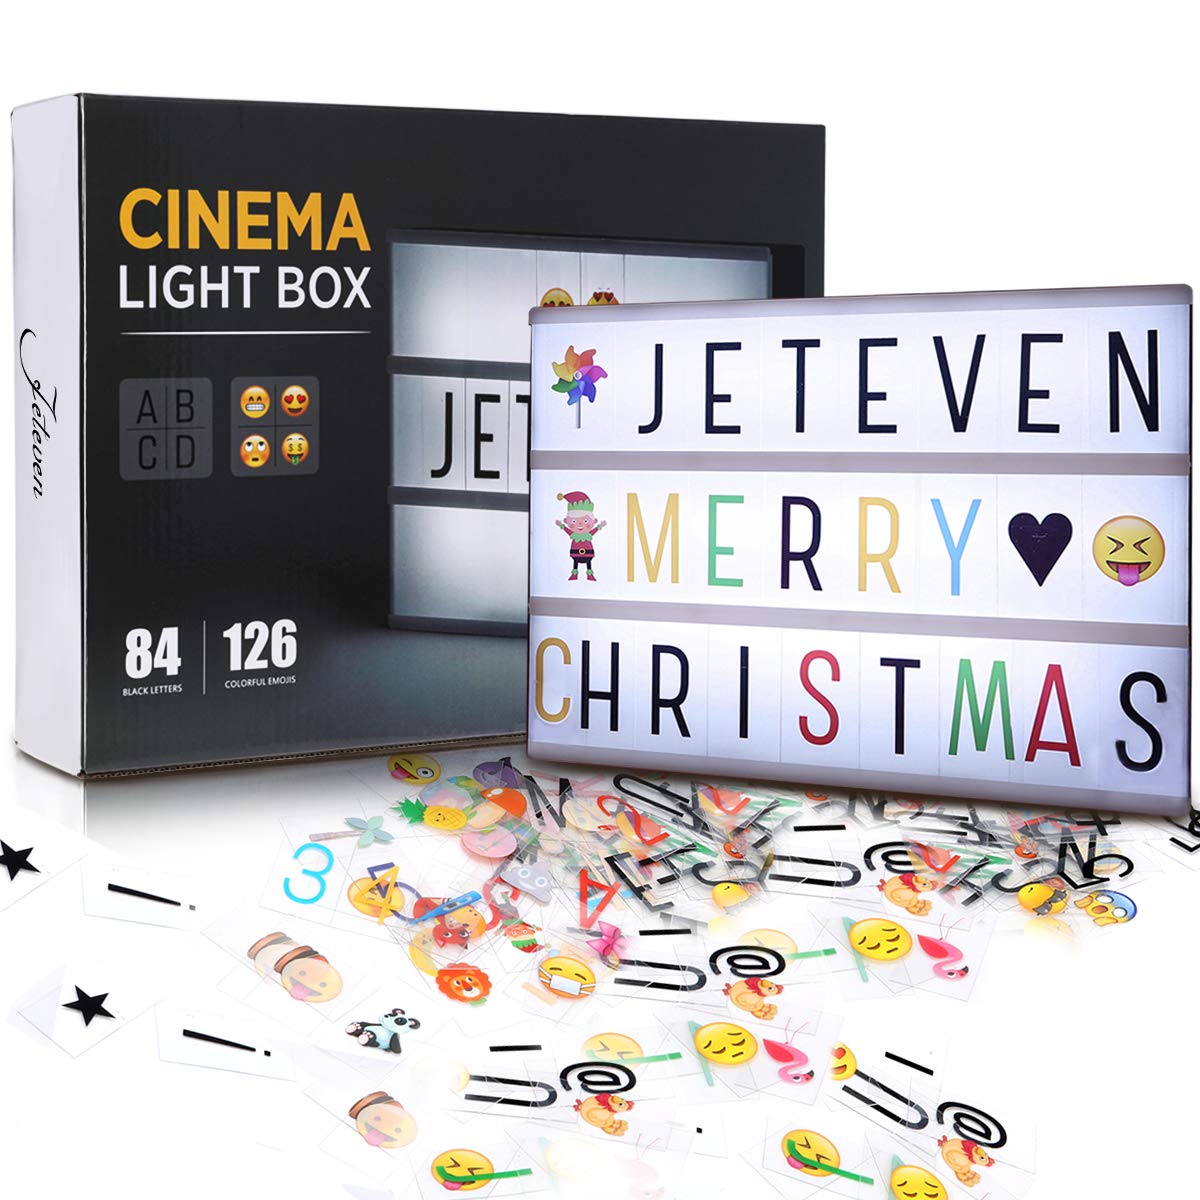 Jeteven Cinema Light Colors Box Colorful Letters Emojis LED for Home Decor Wedding Birthday Parties (White Light)